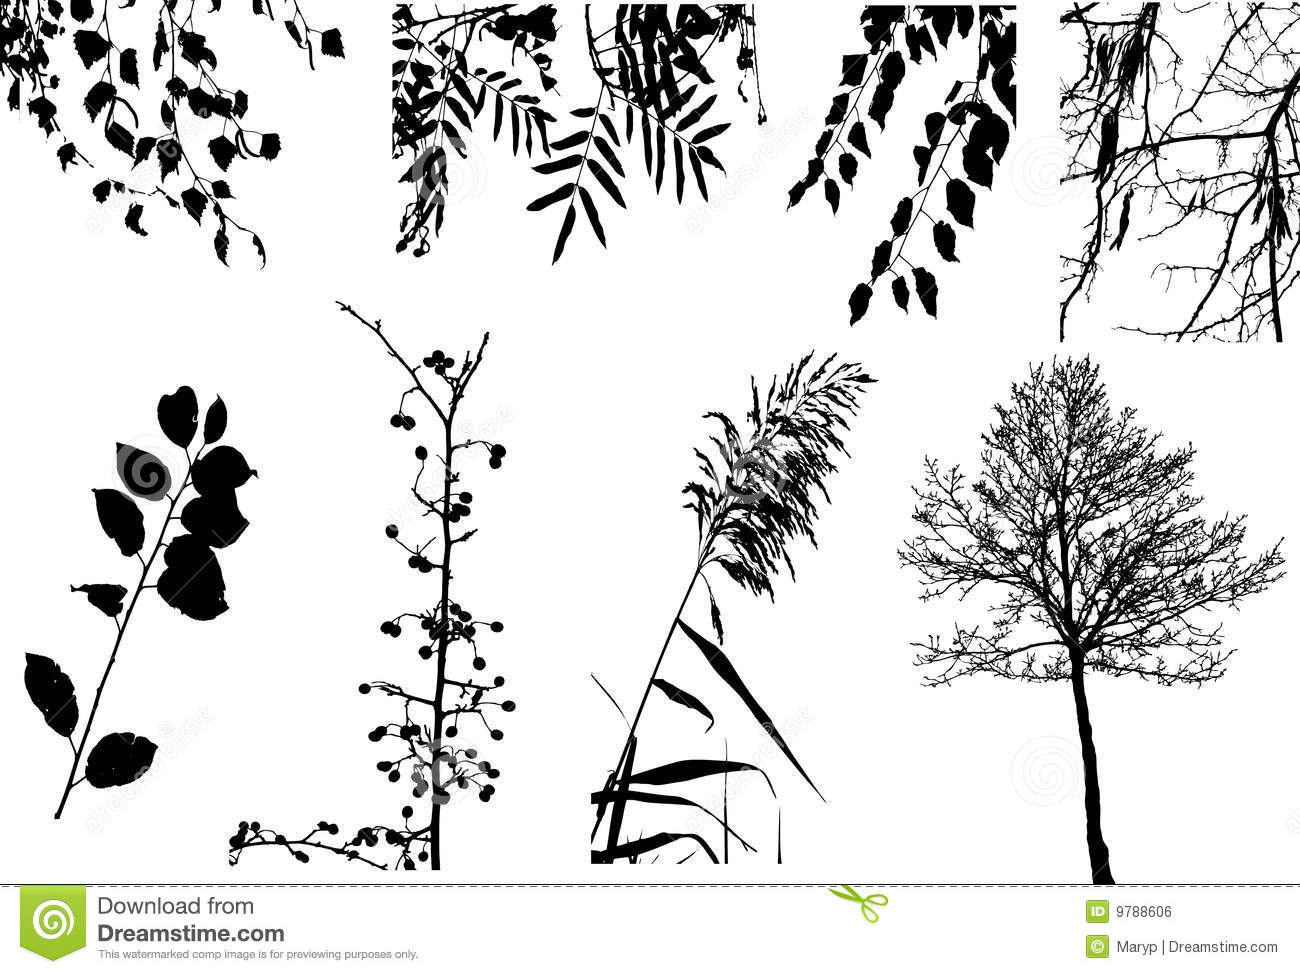 vector clipart collection of trees and bushes stock illustration rh dreamstime com aridi vector clipart collection full 37 cds aridi vector clipart collection password